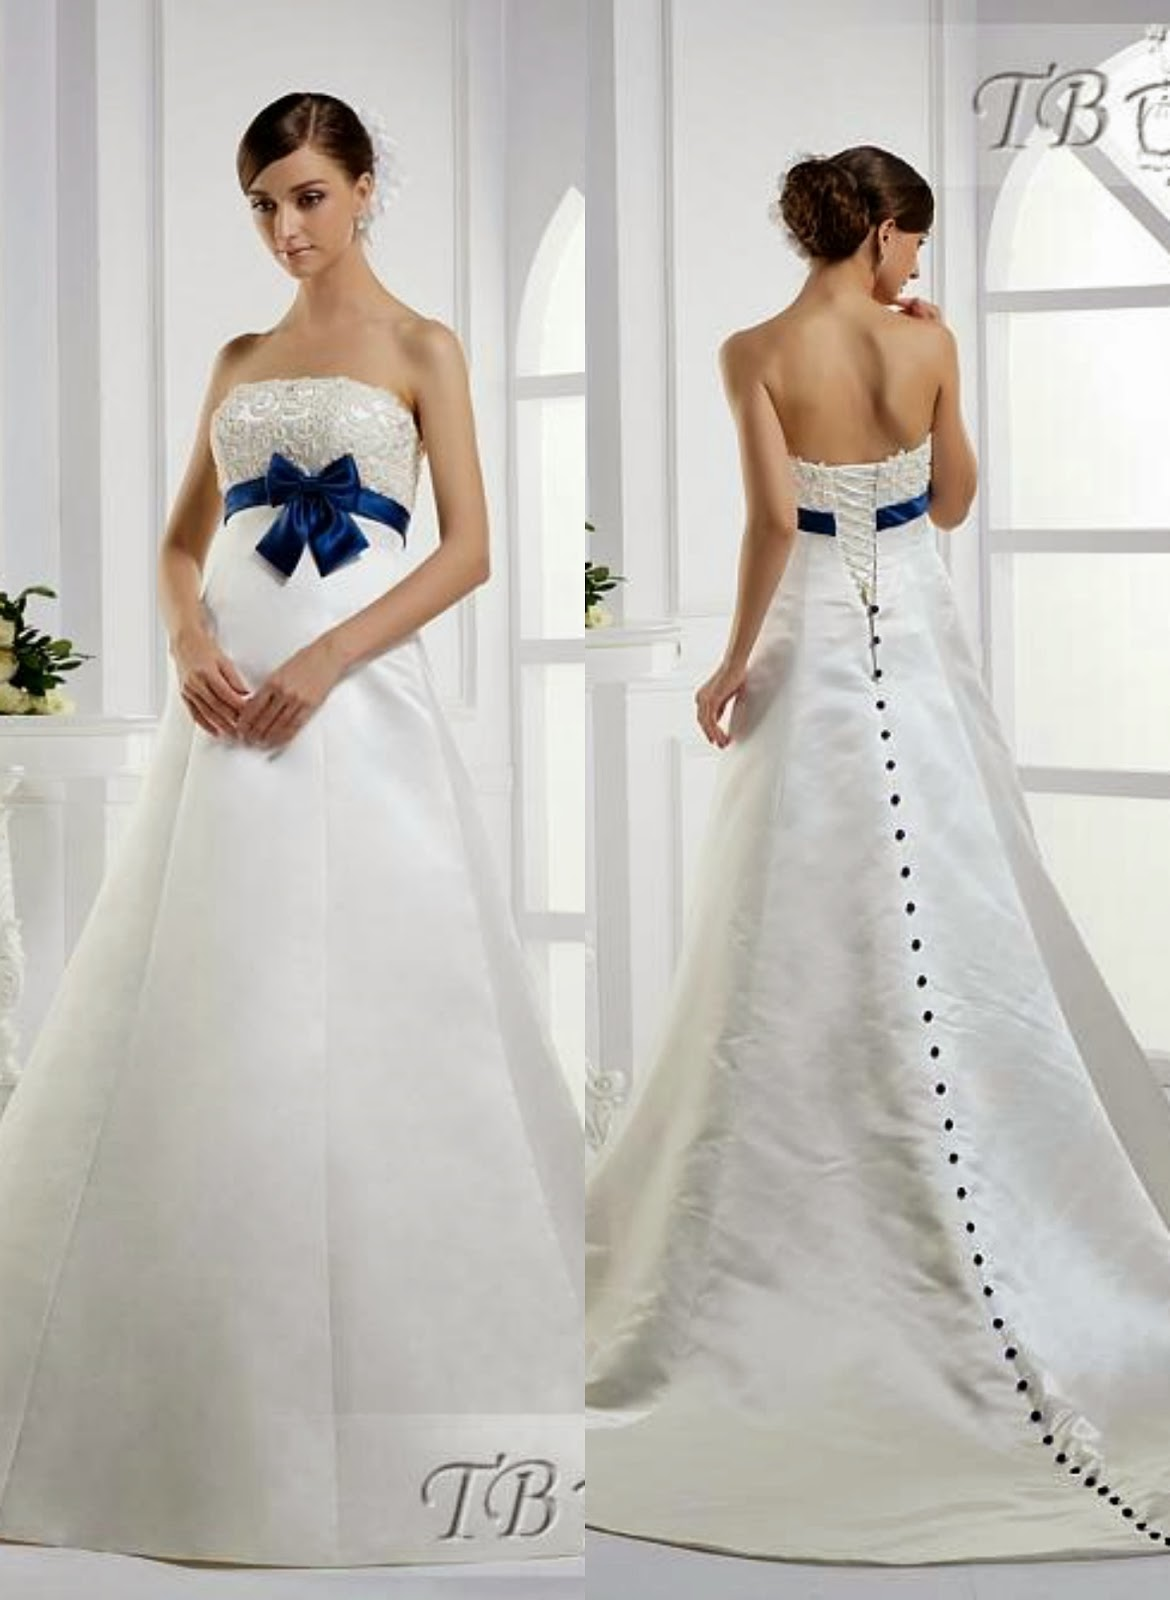 cd996b9fb4ae8 Find great deals on eBay for Maternity Wedding Dress in Wedding Dresses.  Shop with confidence